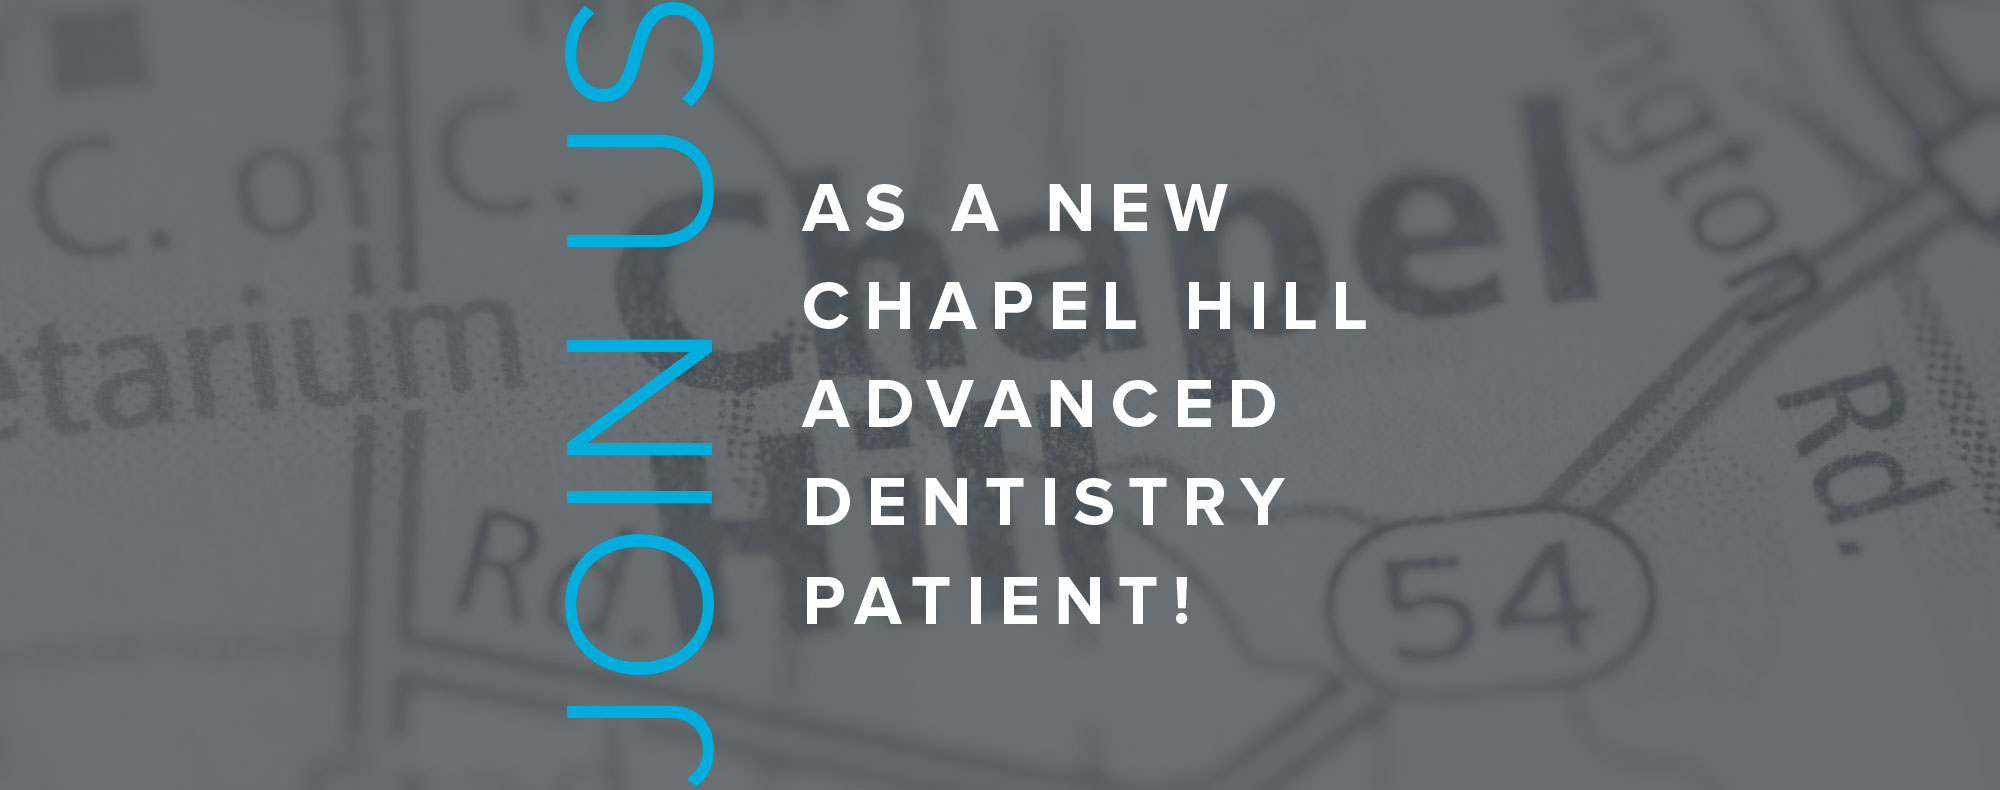 Join us as a new Chapel Hill Advanced Dentistry Patient